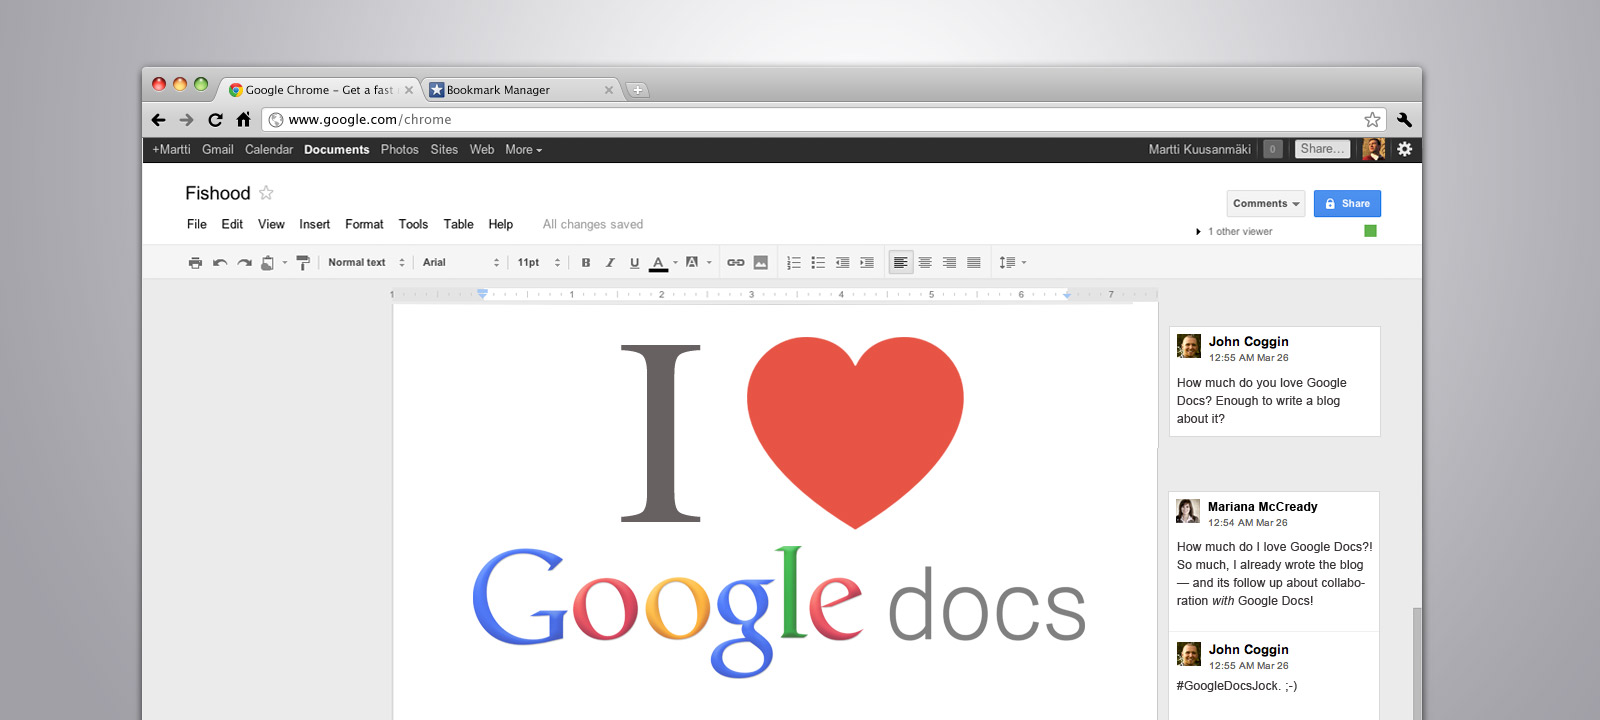 Google Docs Update: Voice Dictation More Accurate Than